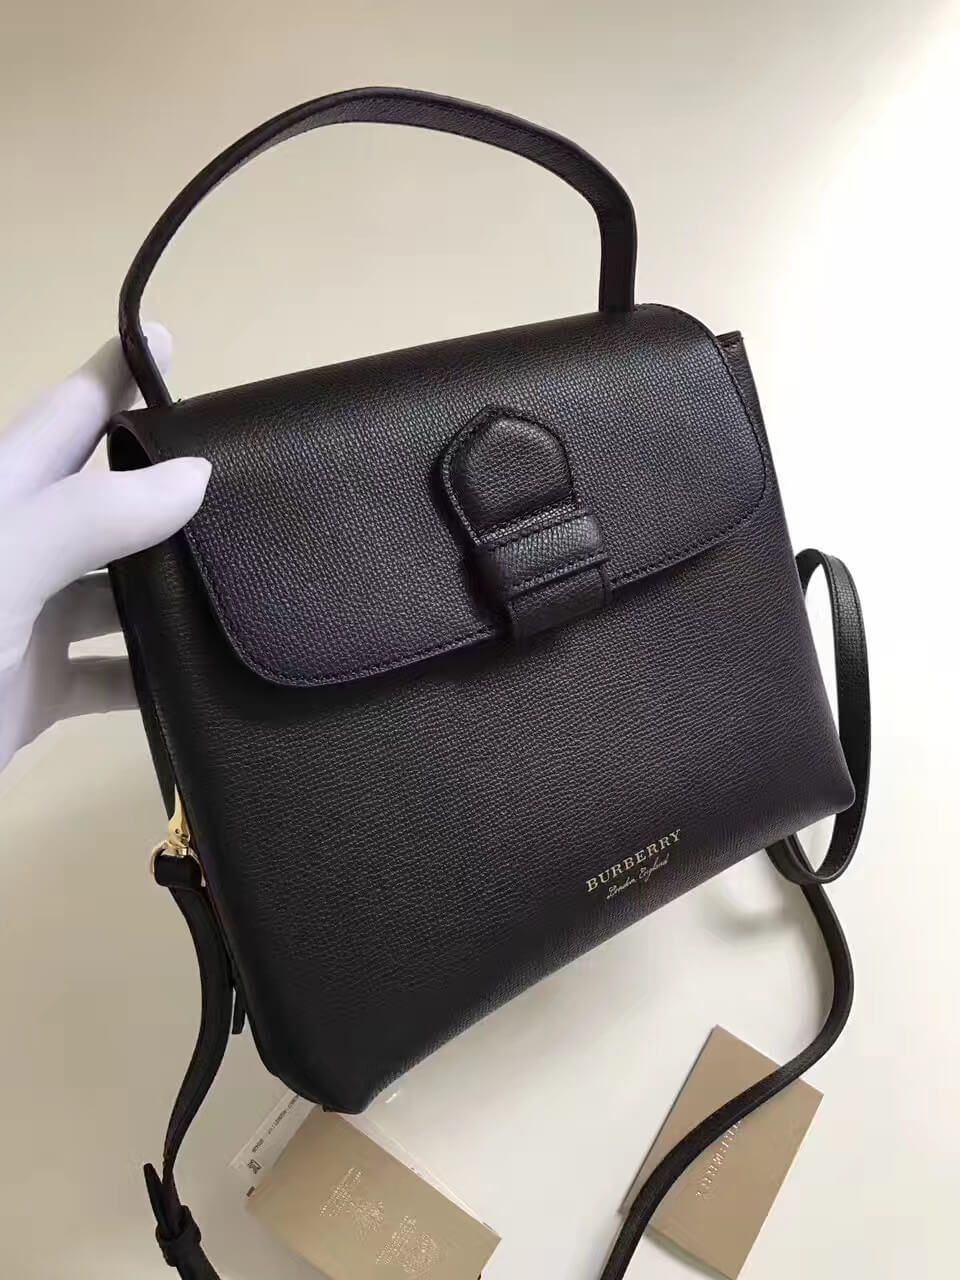 1c7130921679 Burberry Small Grainy Leather and House Check Tote Bag Black 2017 ...